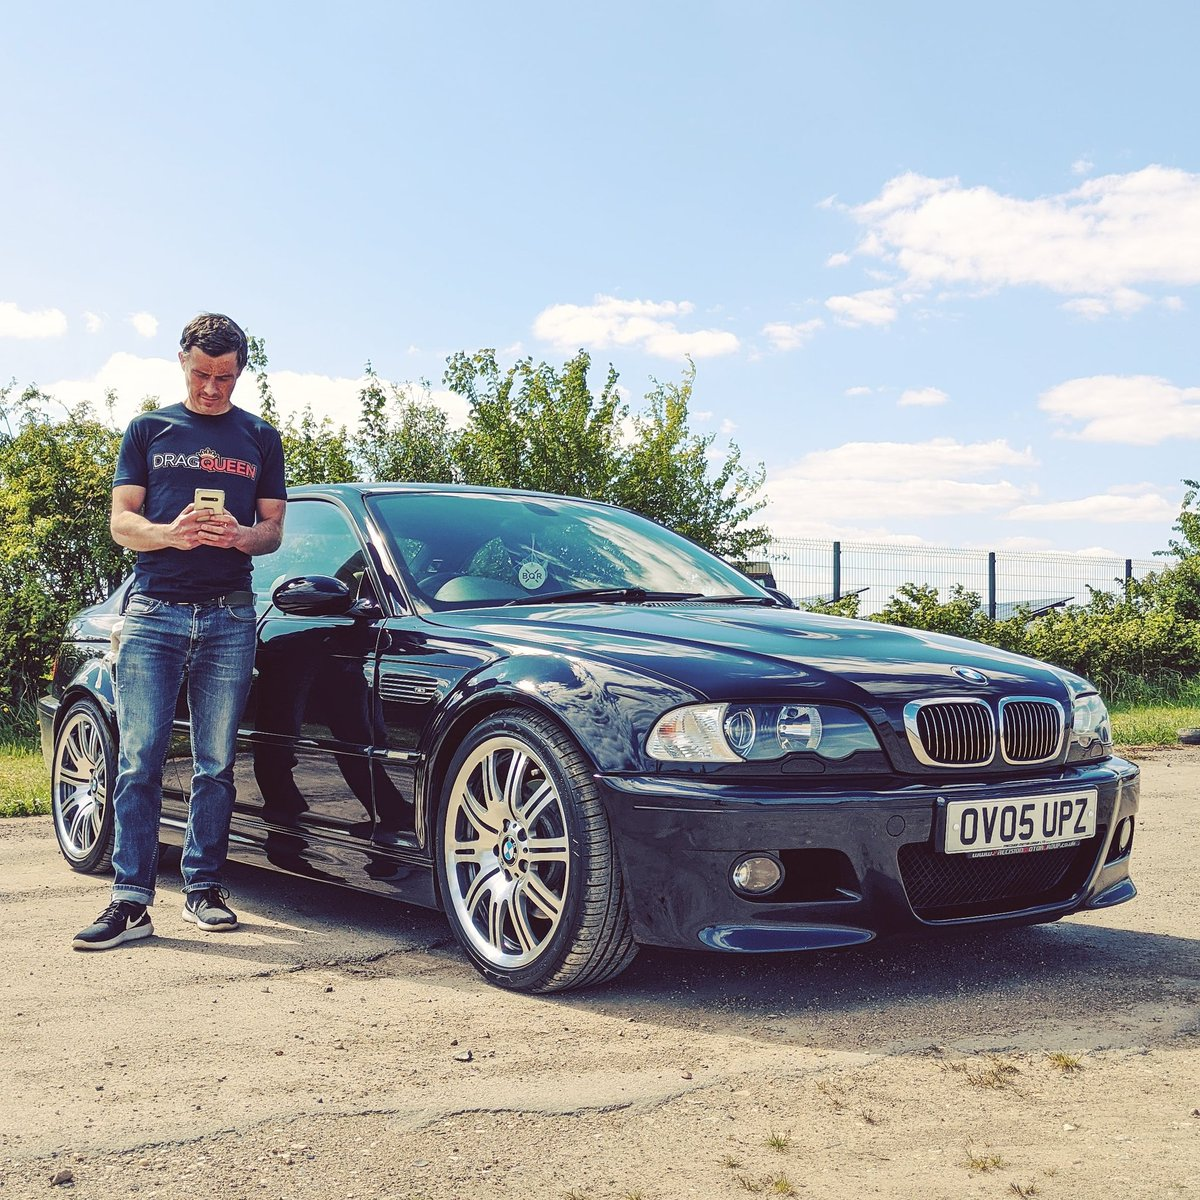 Just texting the world to let it know the E46 is the BEST generation of @BMW M3. Do you agree? https://t.co/ASzEqhhoXO